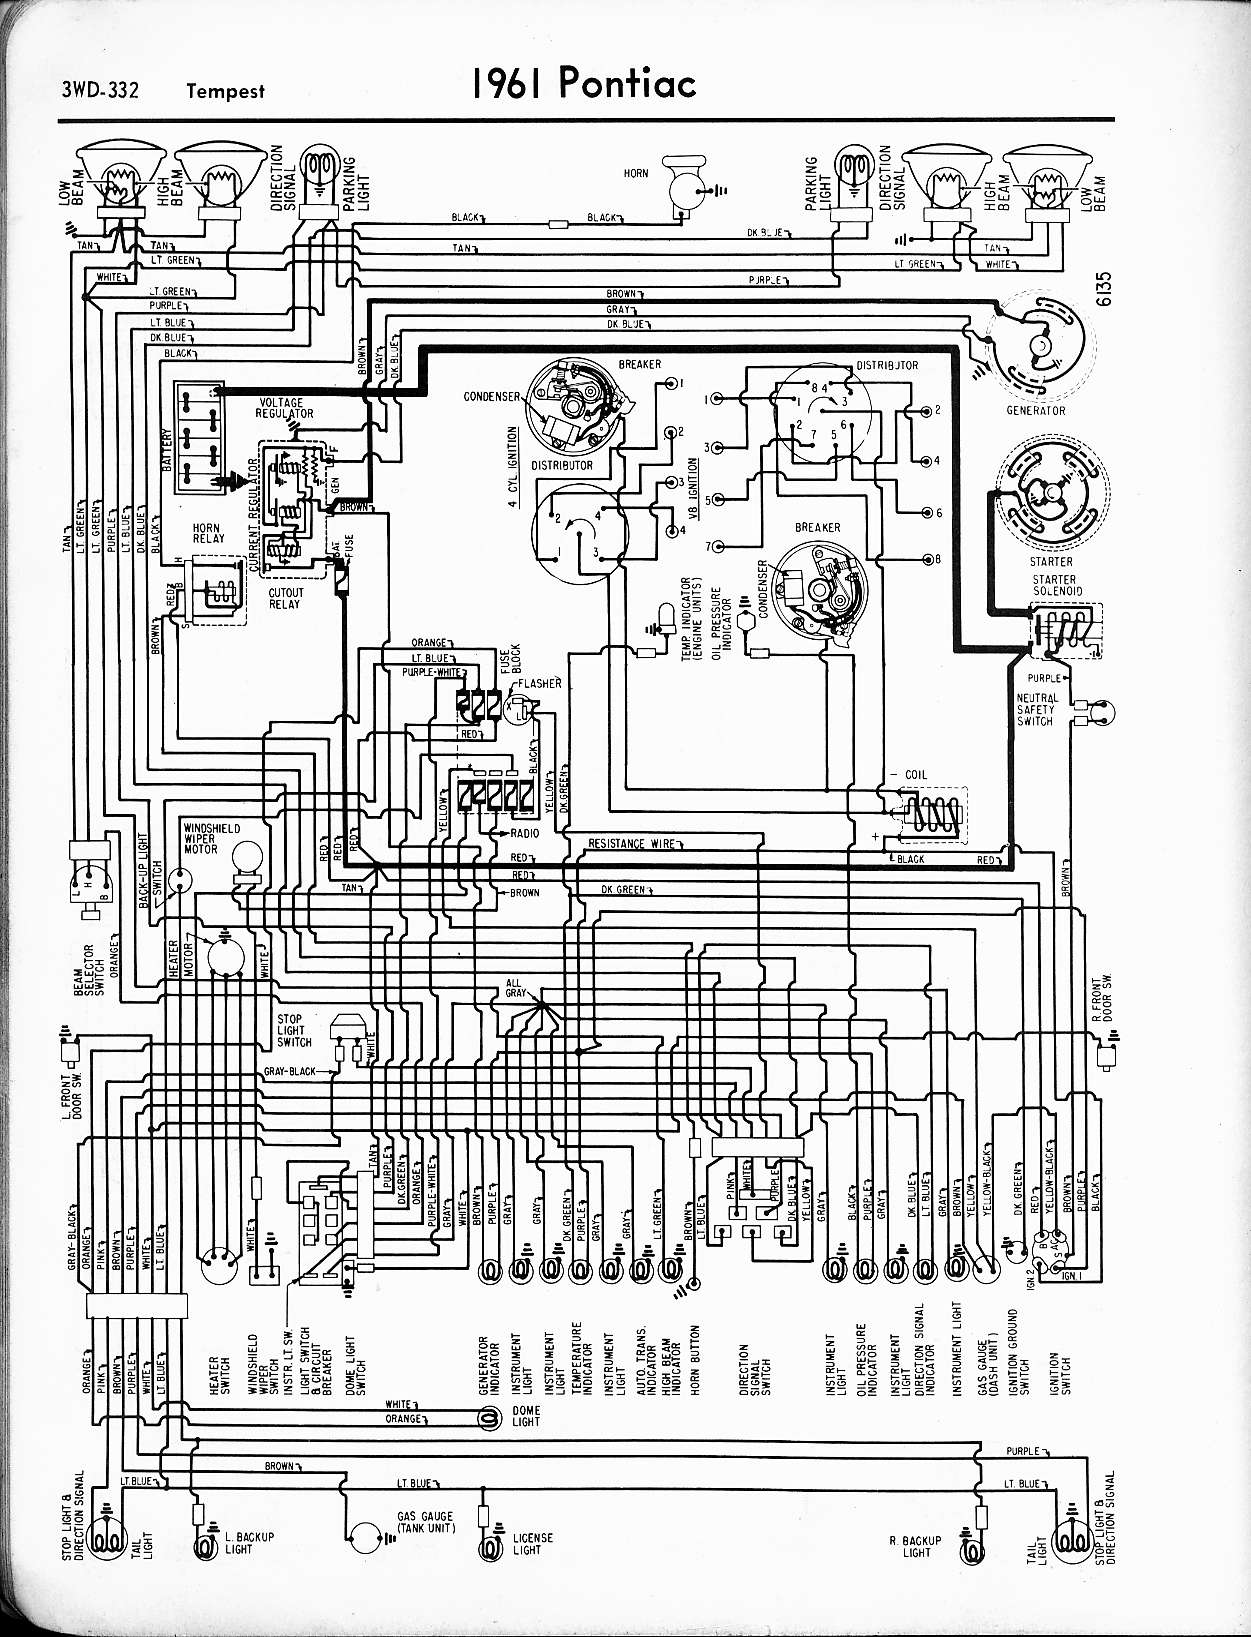 1965 Pontiac Grand Prix Wiring Diagram Diagrams 99 Firebird Wallace Racing Rh Wallaceracing Com 04